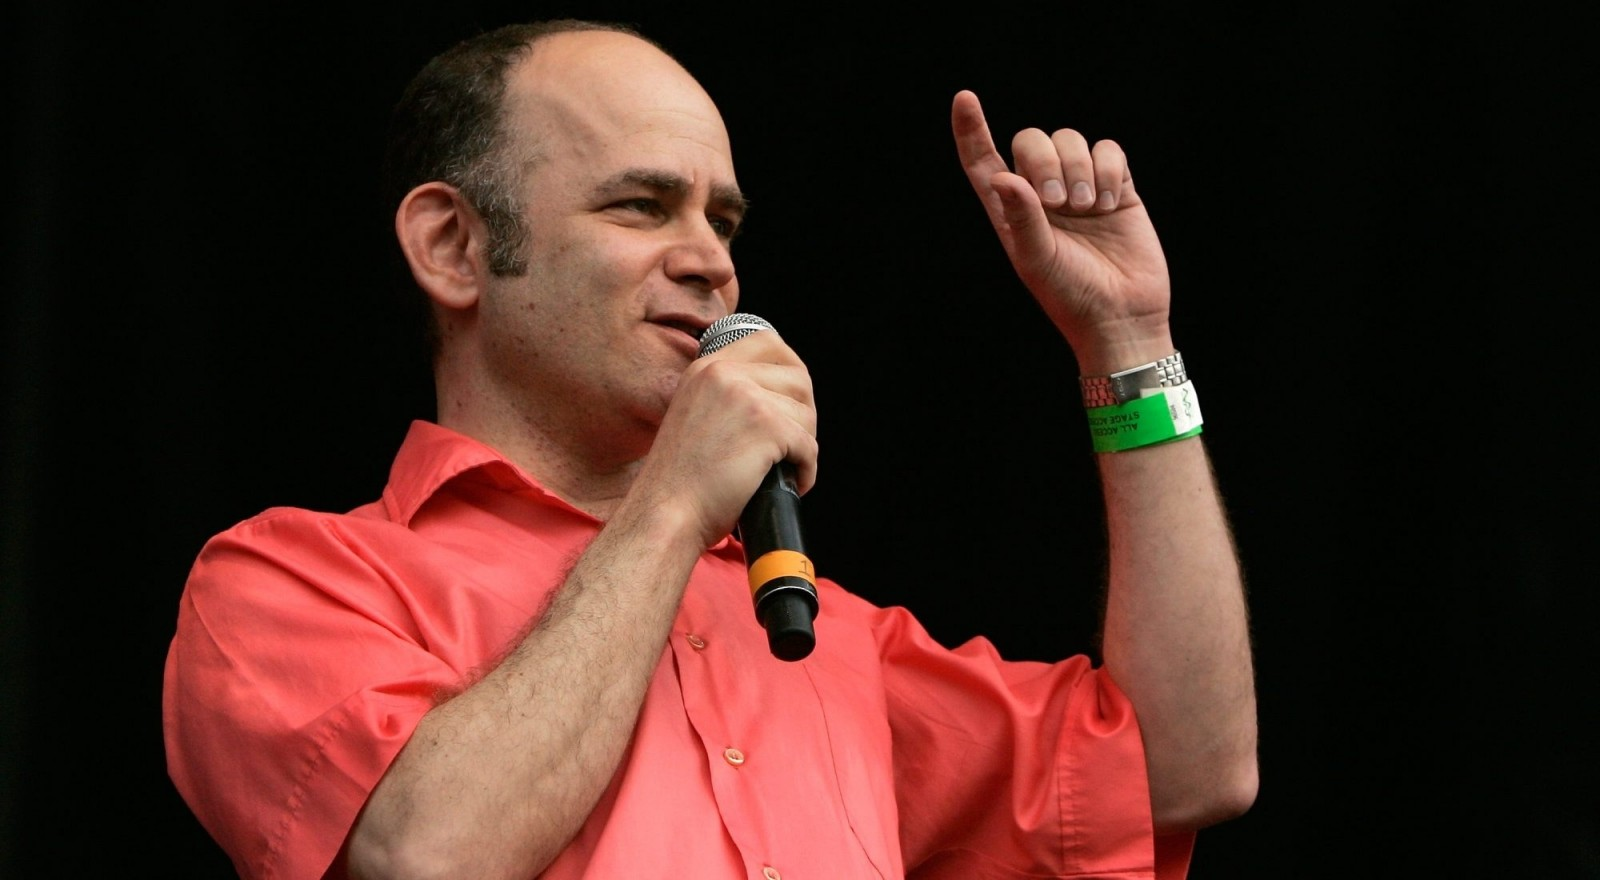 Comedian Todd Barry will perform Dec. 11 at the Tralf. (Getty Images)